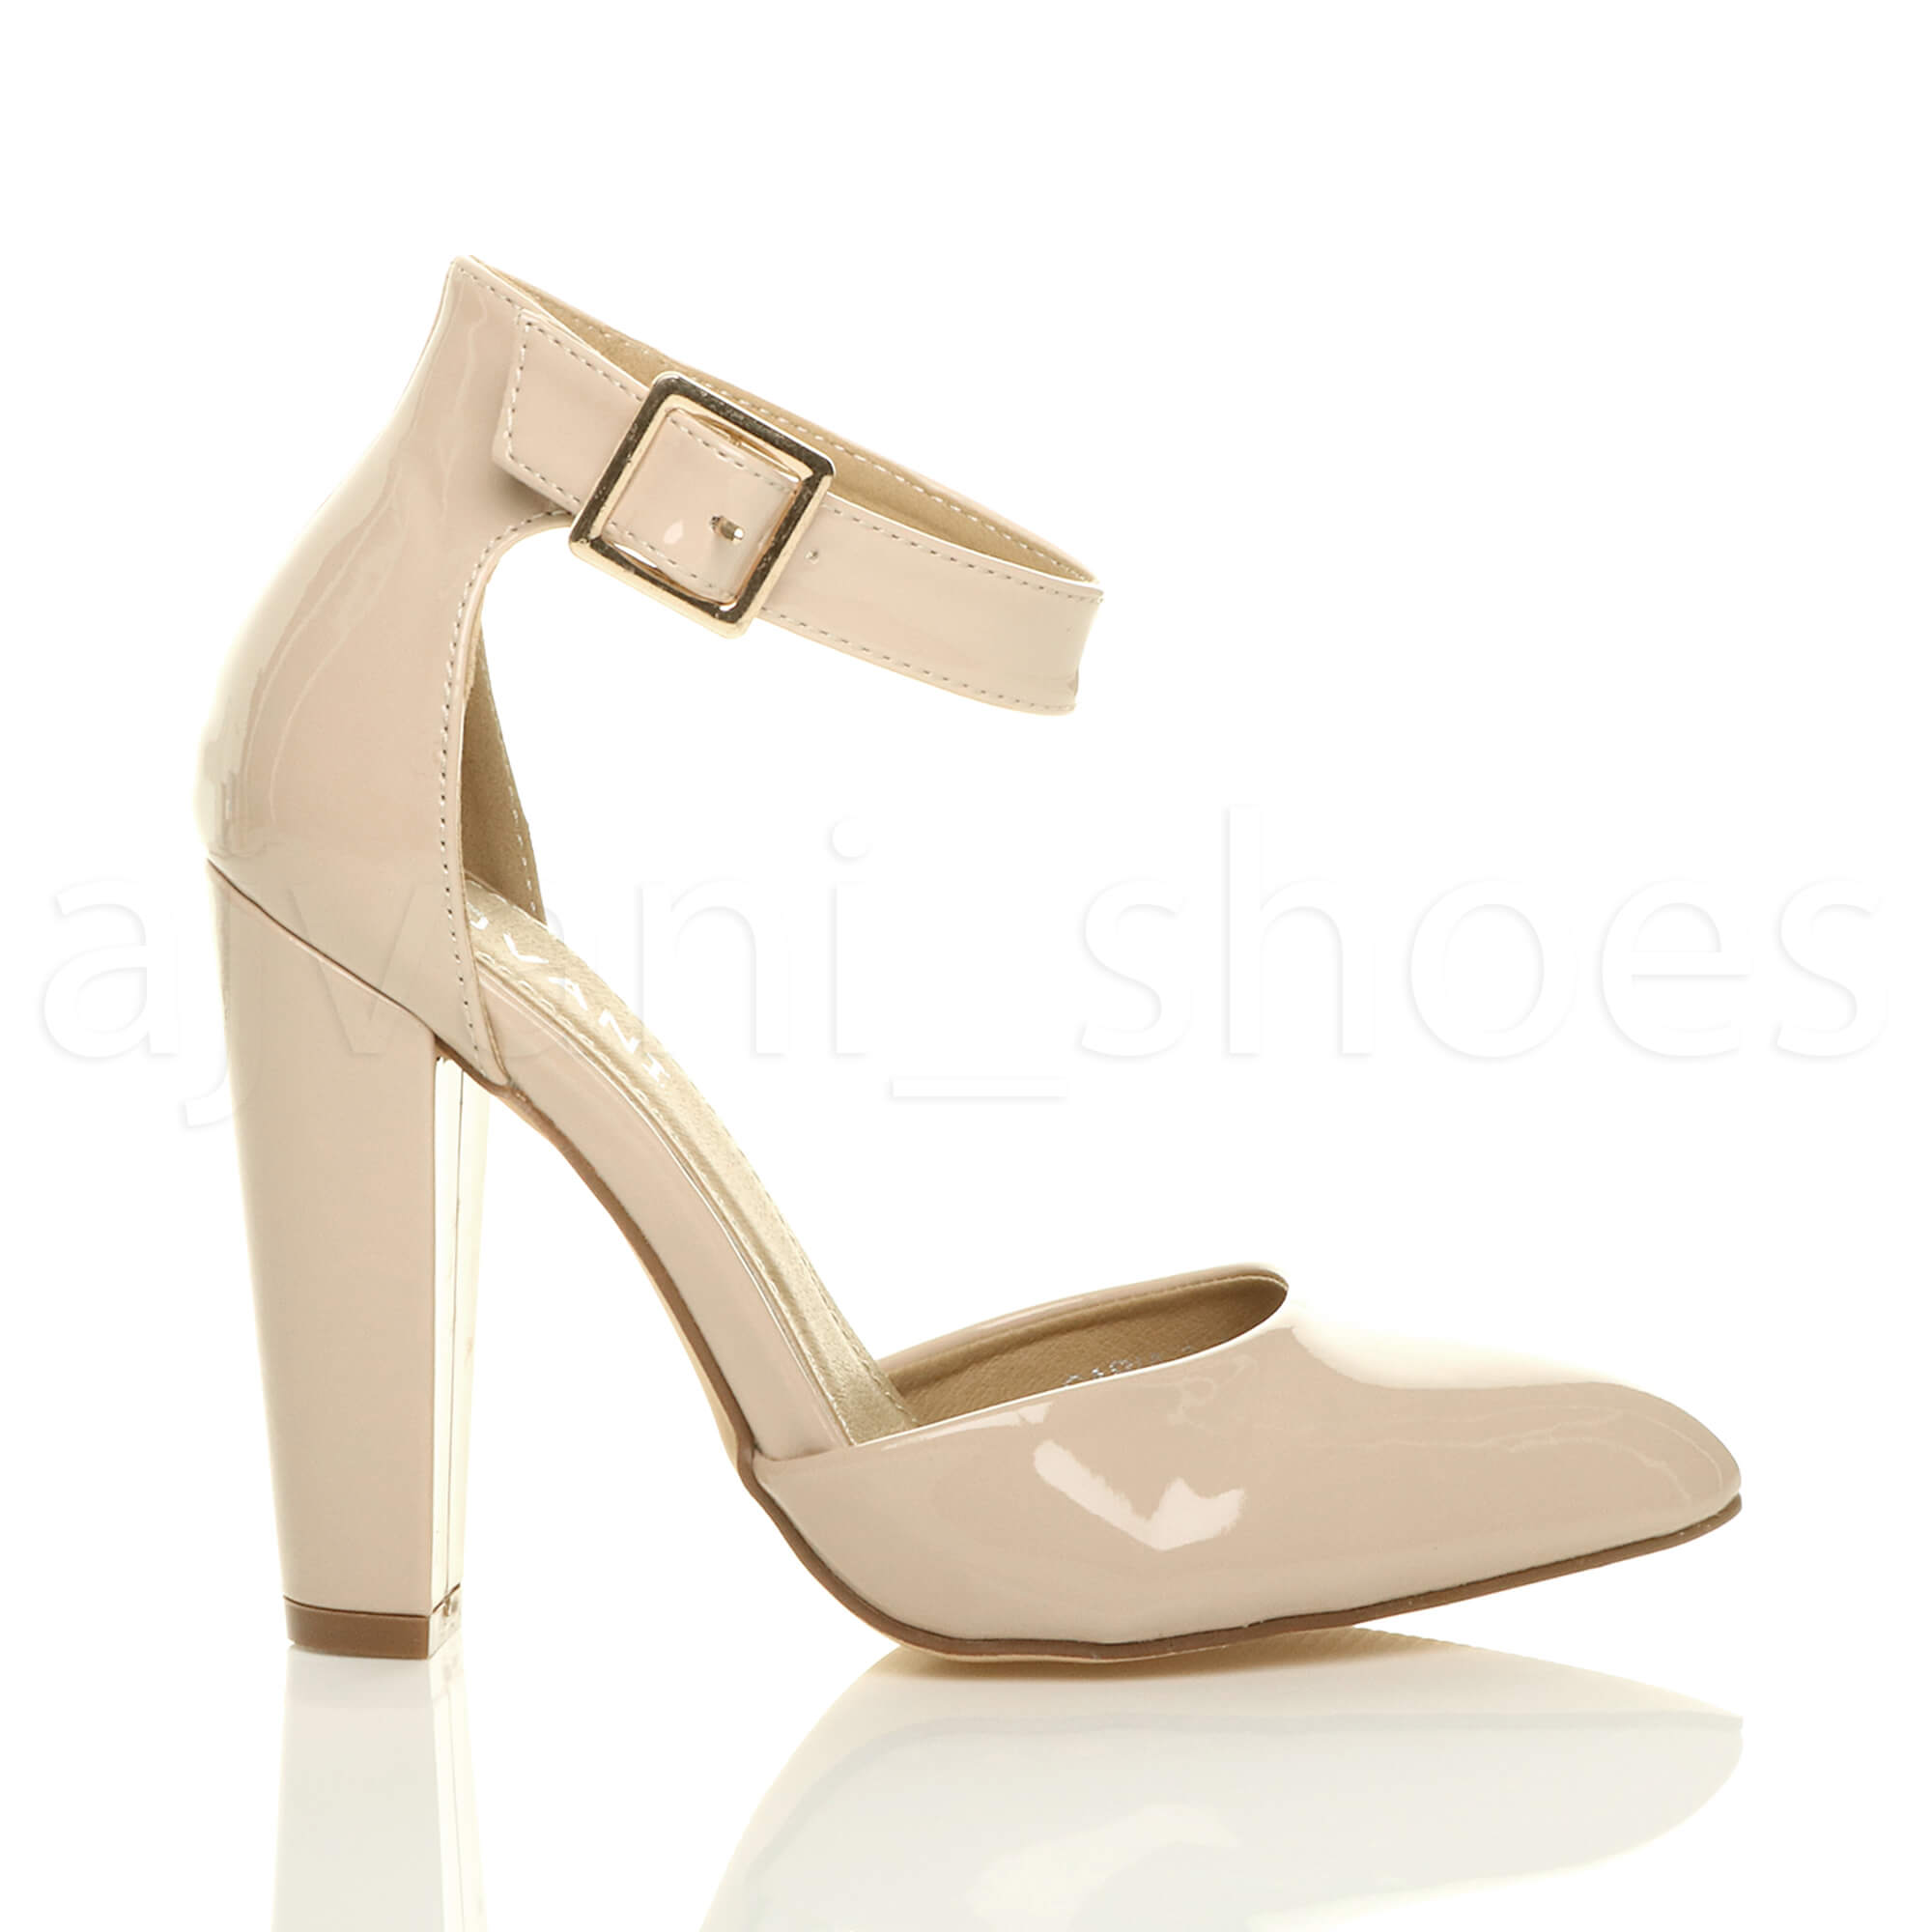 WOMENS-LADIES-HIGH-BLOCK-HEEL-ANKLE-STRAP-BUCKLE-POINTED-COURT-SHOES-SIZE thumbnail 87